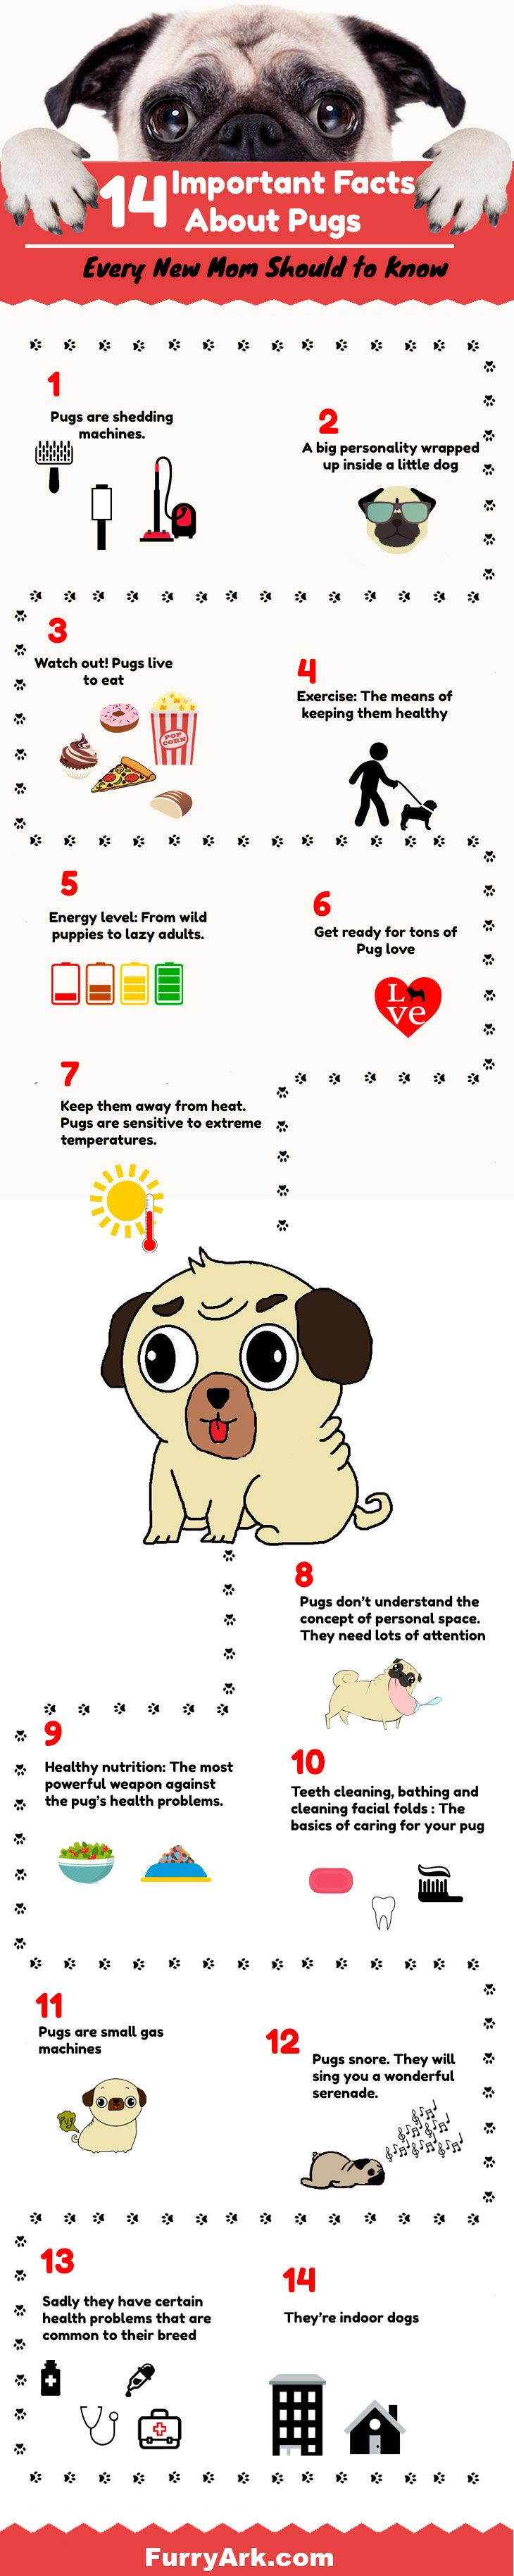 14 Important Facts About Pugs Every New Mom Should To Know Pug